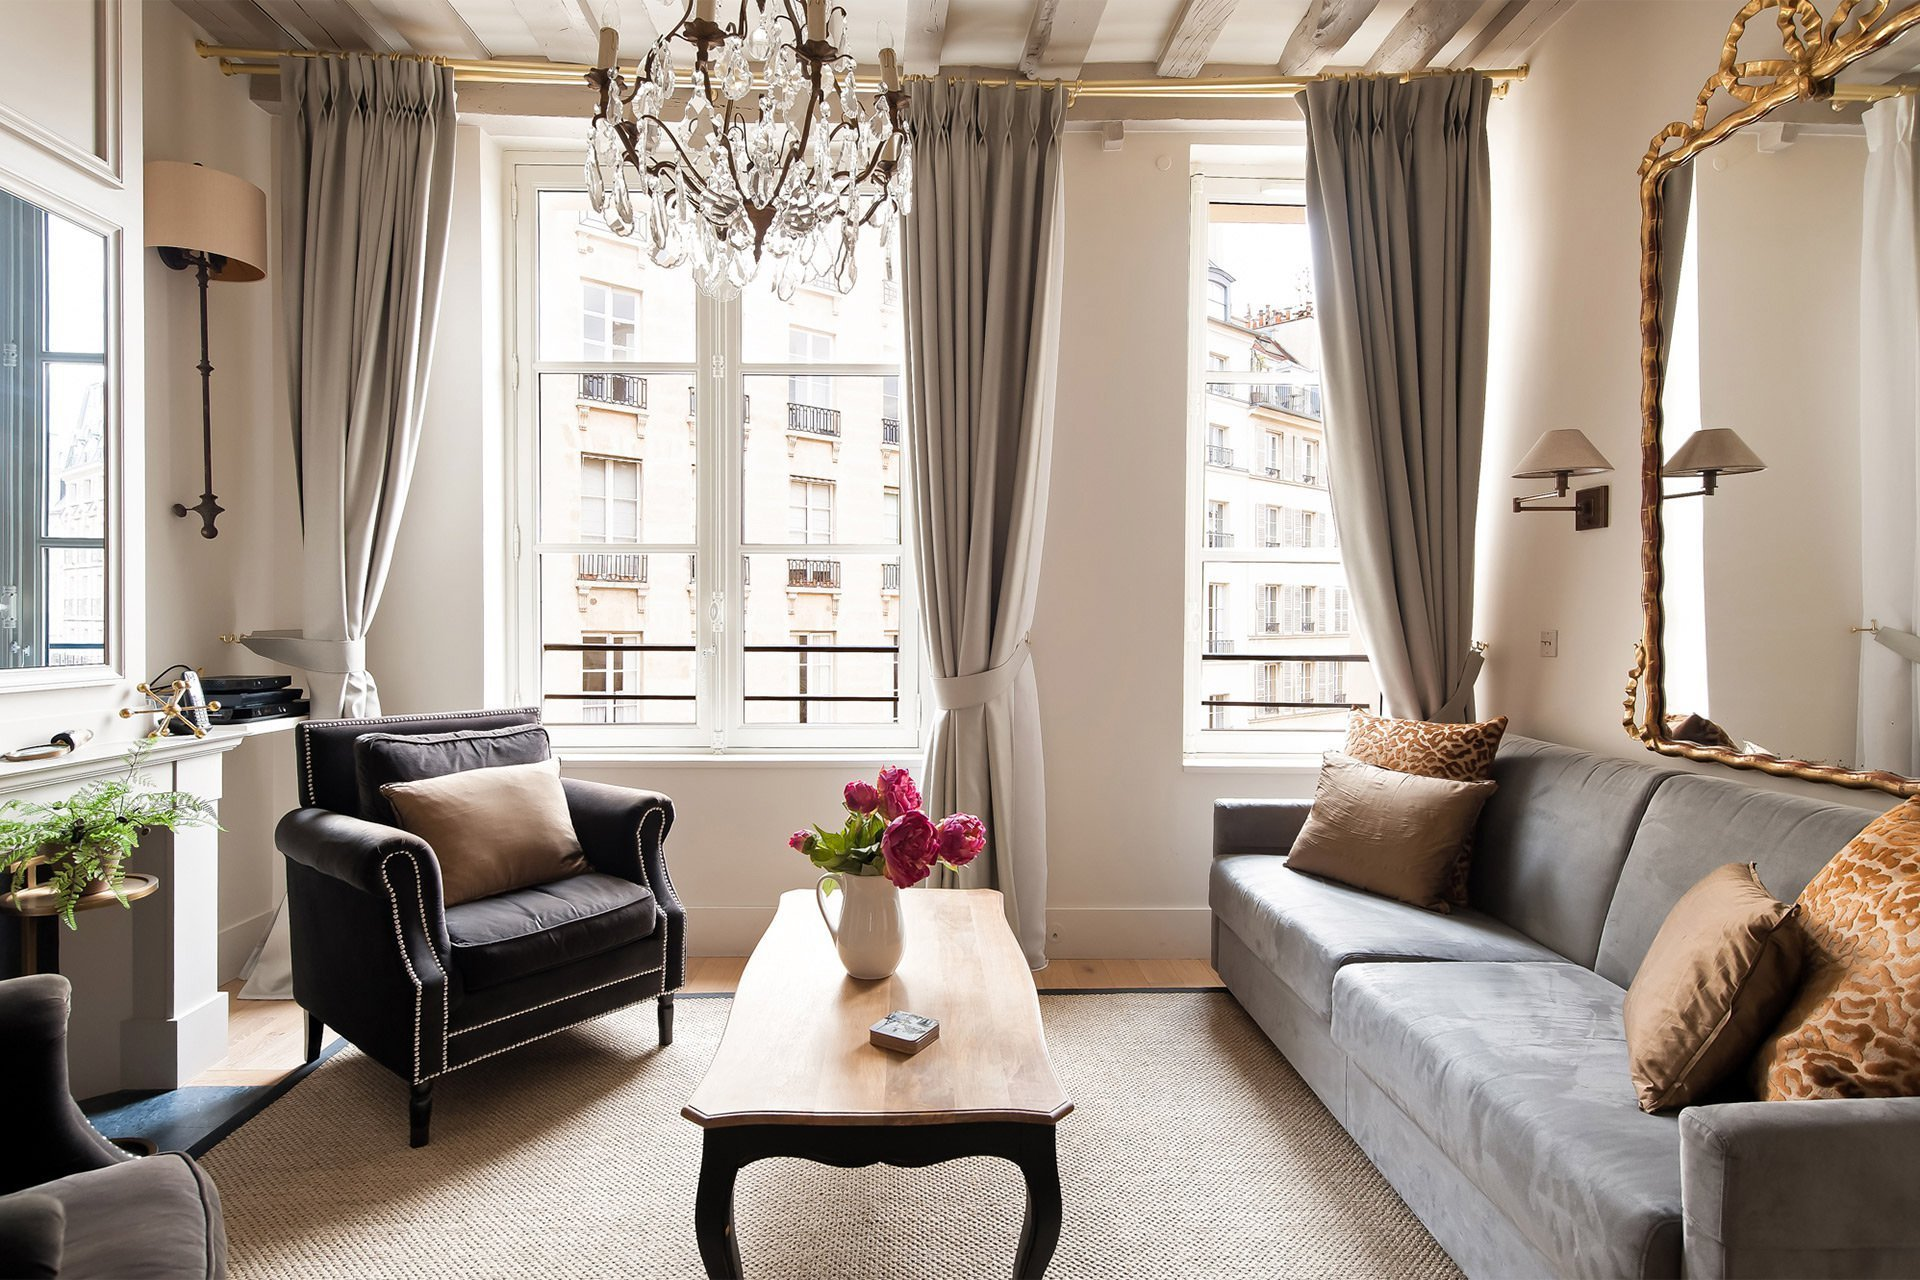 Best Place Dauphine One Bedroom Apartment Rental Paris With Pictures